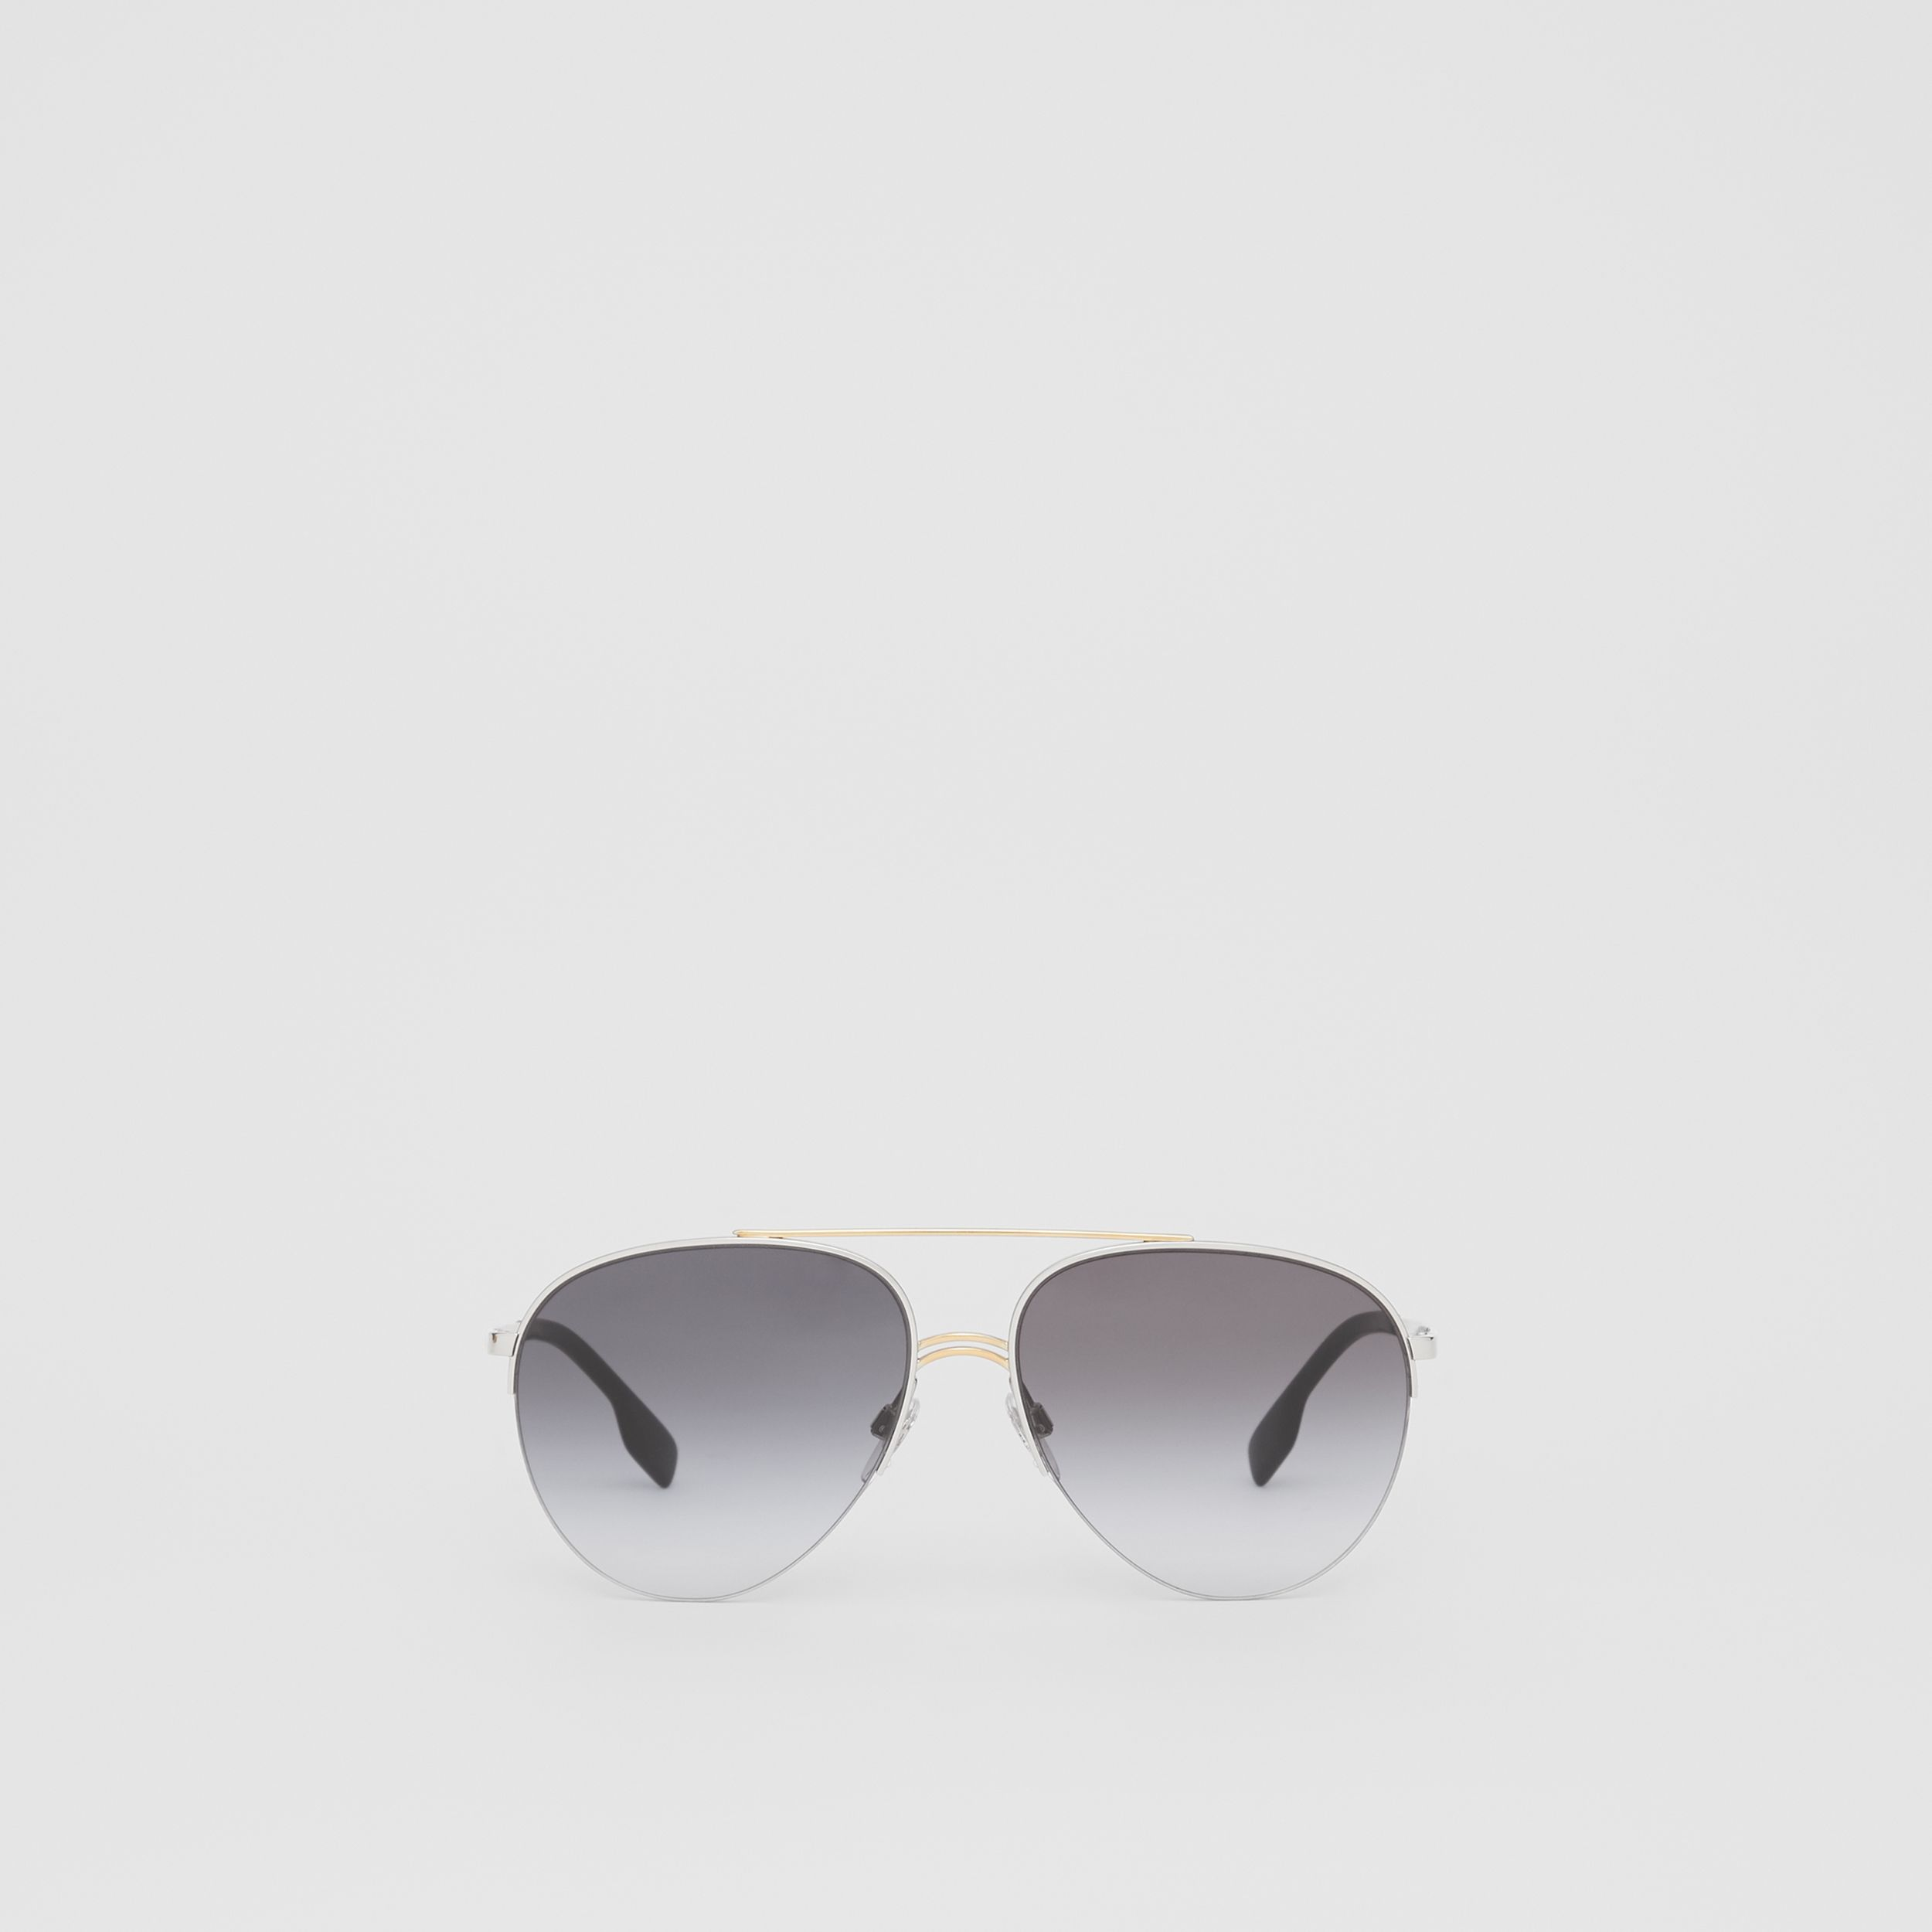 Top Bar Detail Pilot Sunglasses in Dark Grey - Women | Burberry United Kingdom - 1